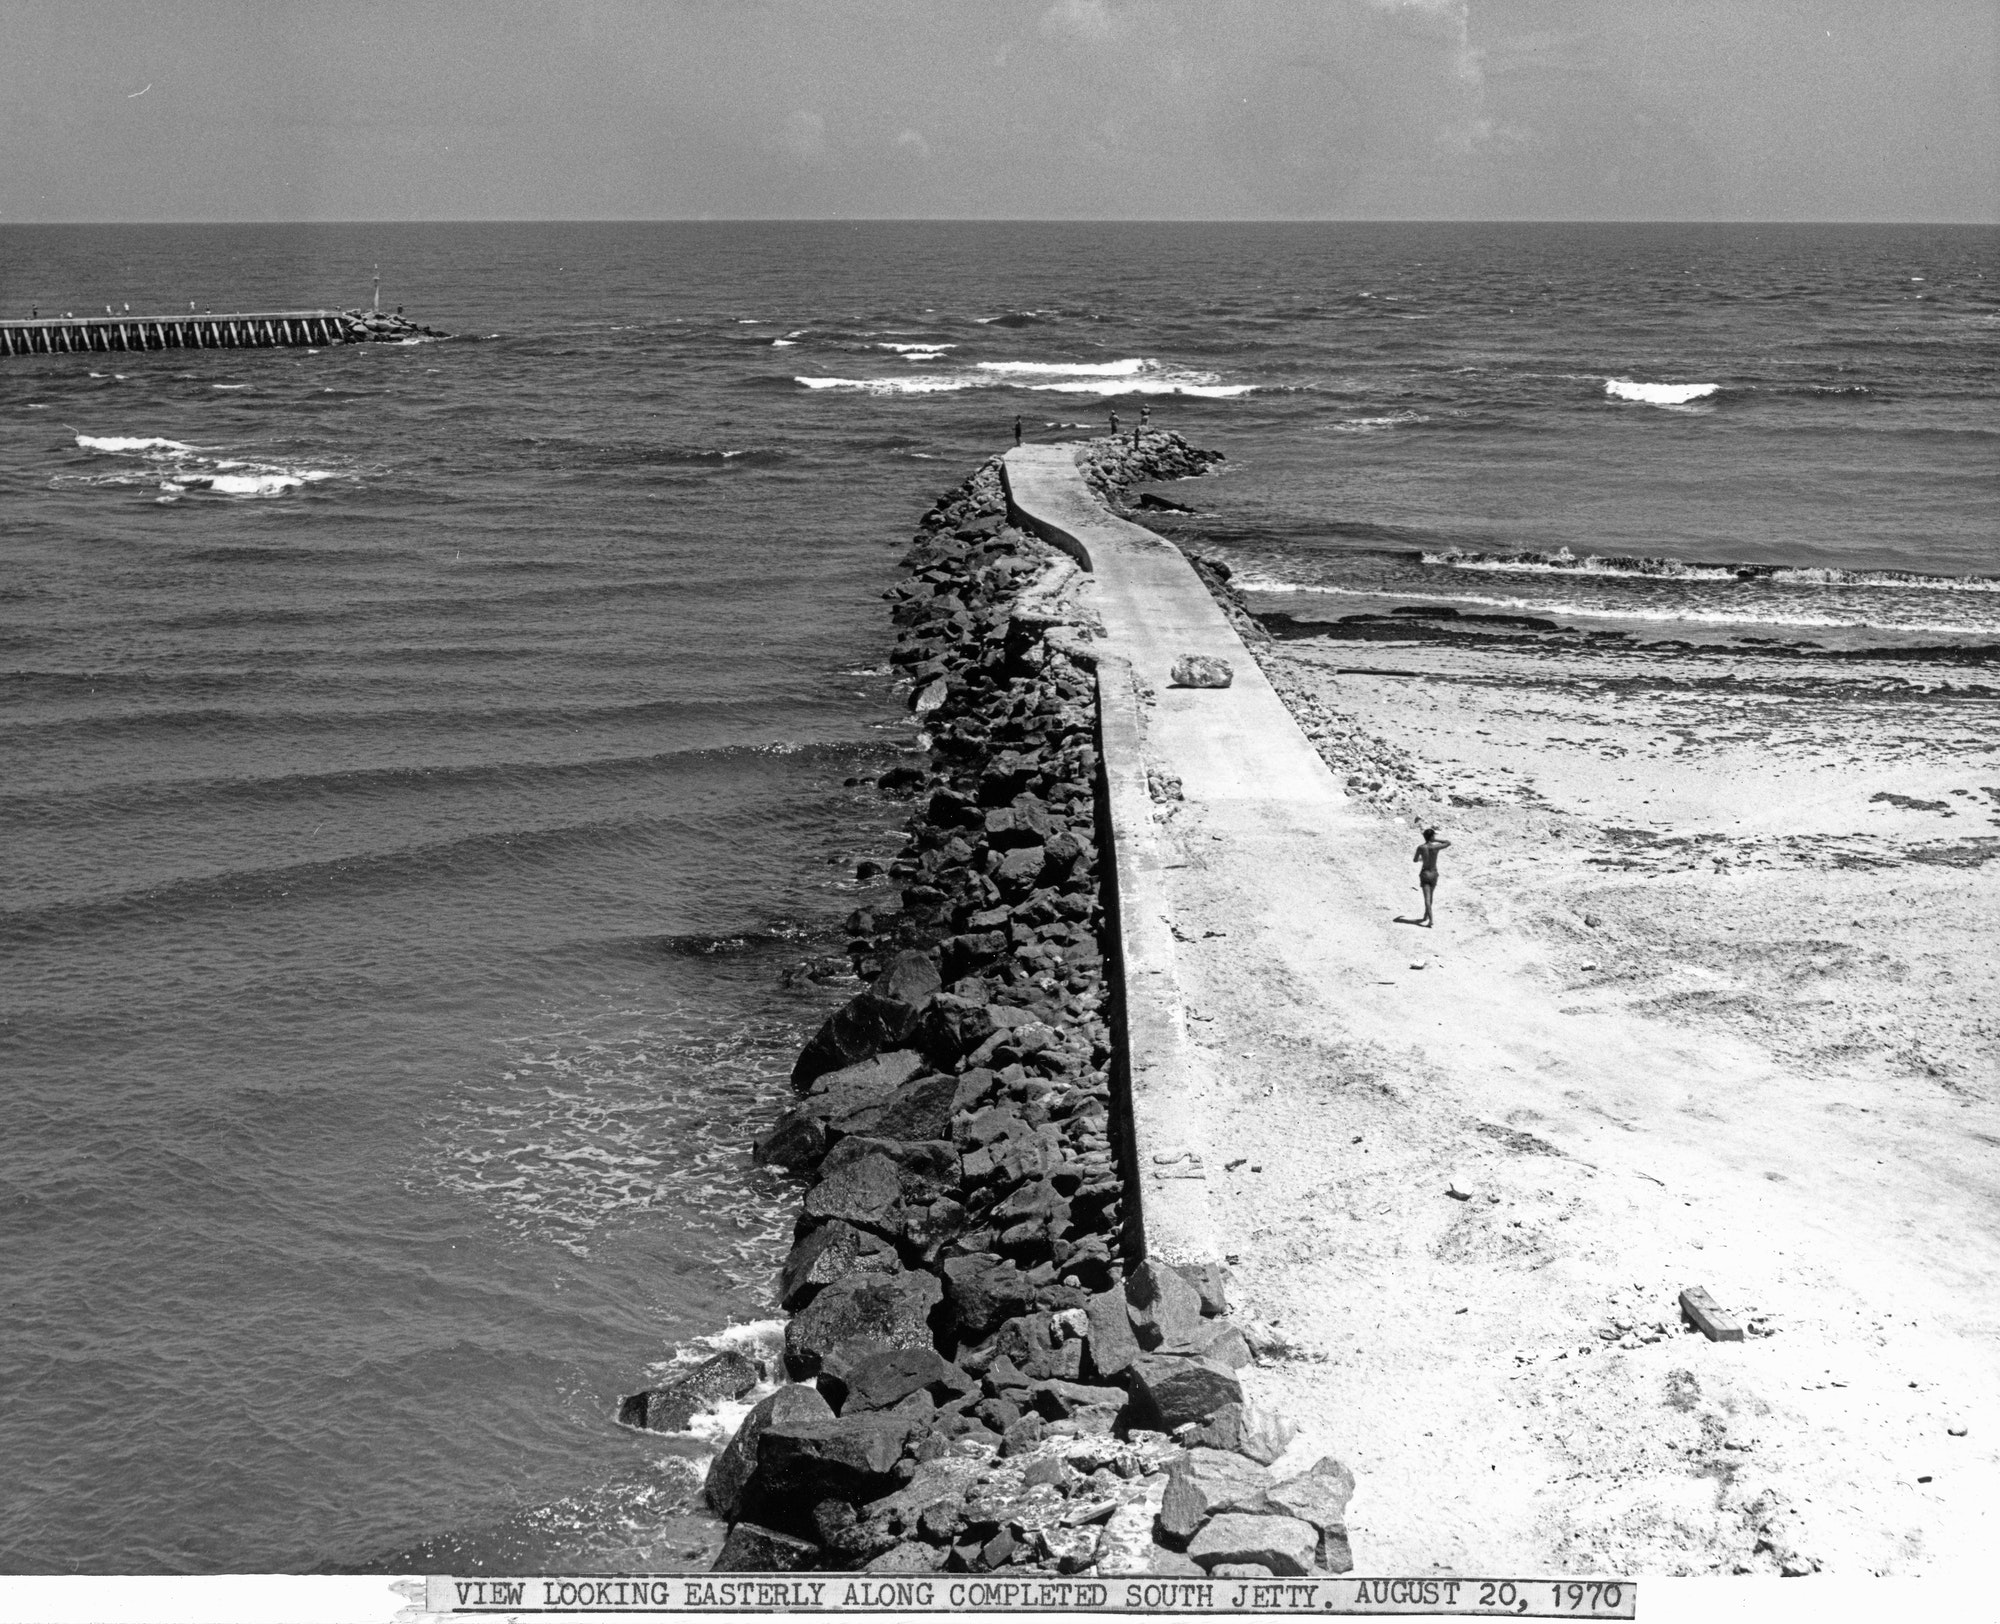 view of the completed South Jetty extending into the Atlantic Ocean